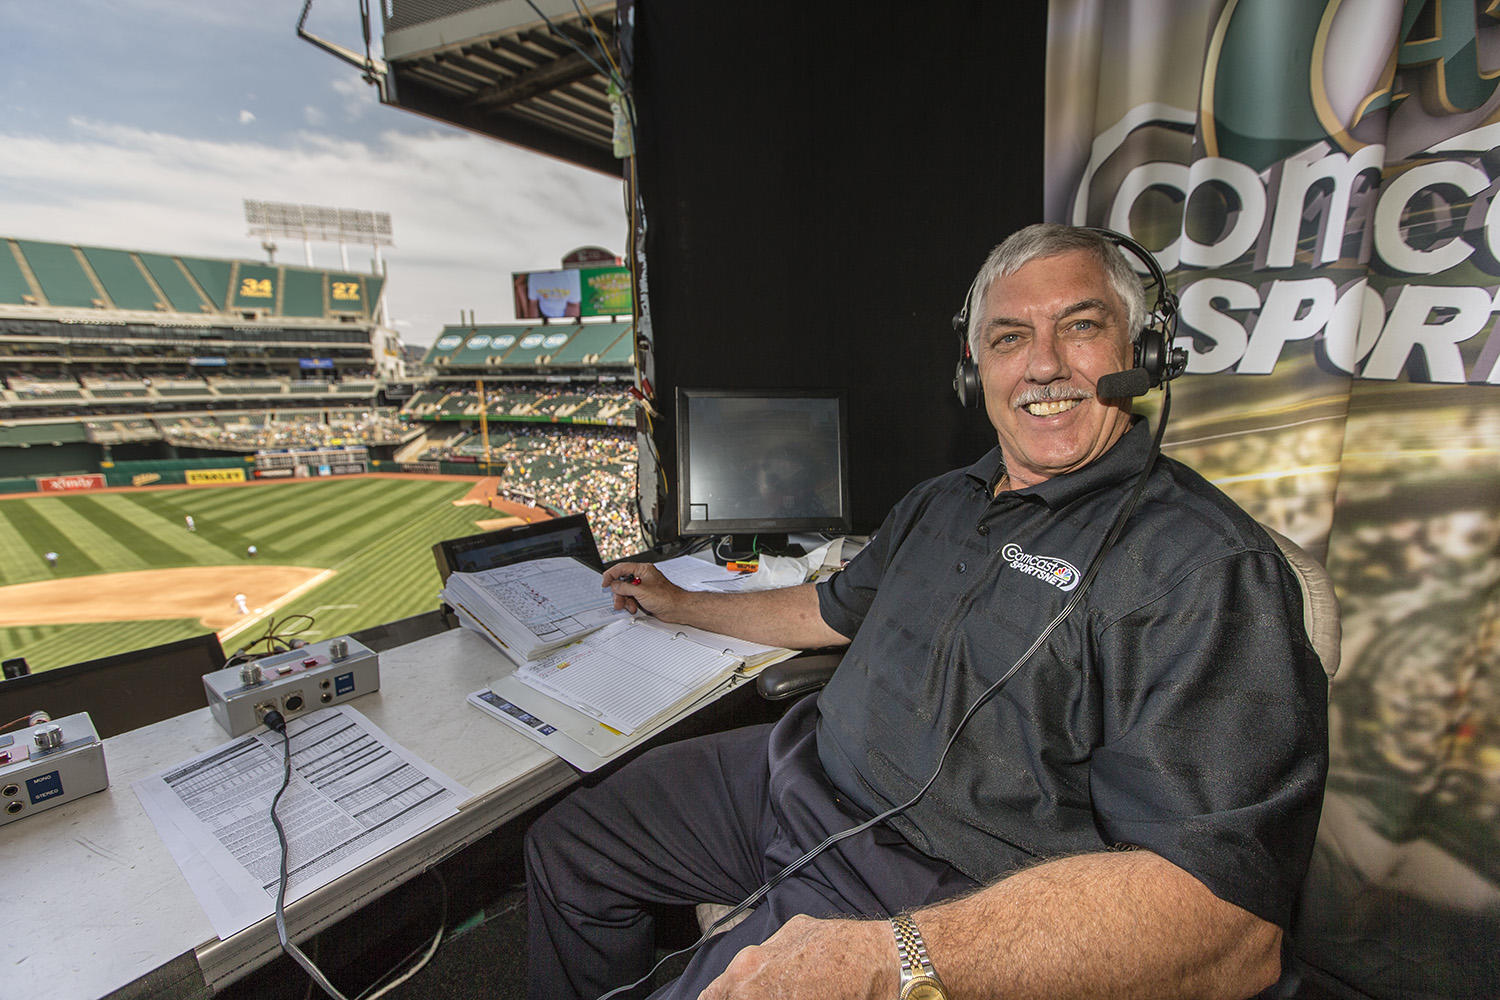 Ray Fosse has been in the A's broadcast booth for the past three decades, working with Bill King during his first years on the air. (Jean Fruth / National Baseball Hall of Fame)